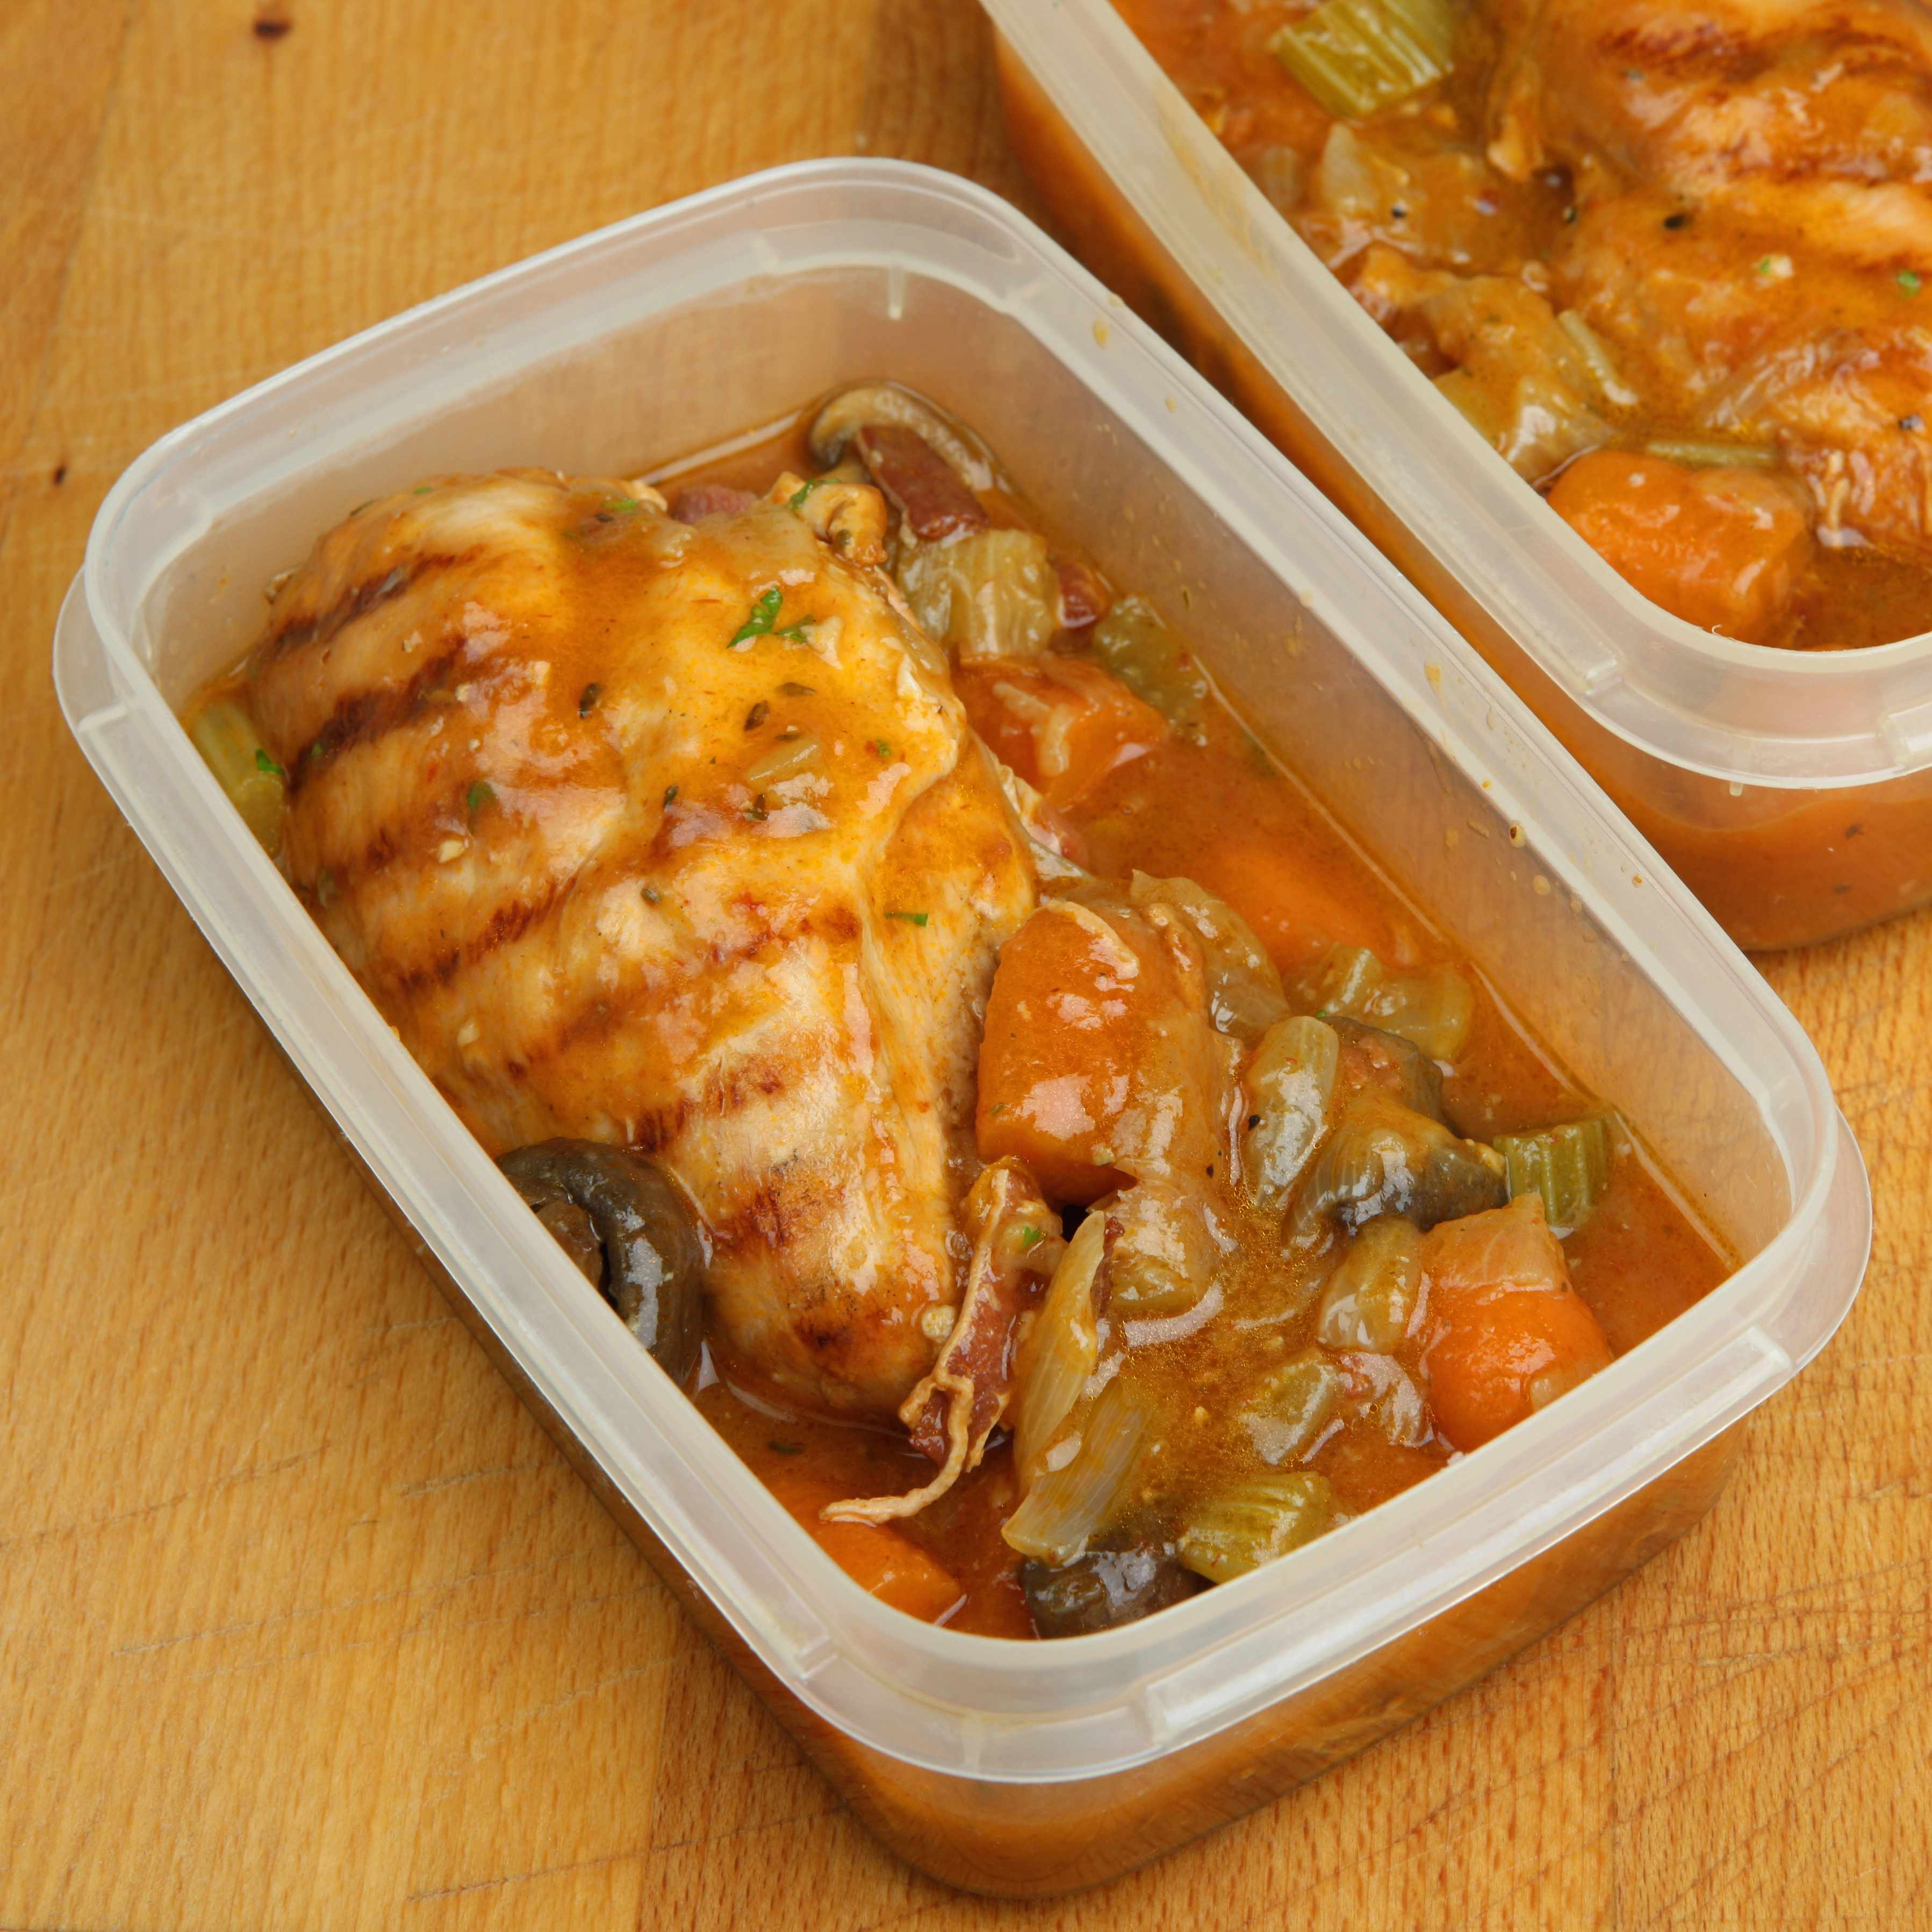 marinated chicken with vegetables and seasoning in a freezer or refrigerator container